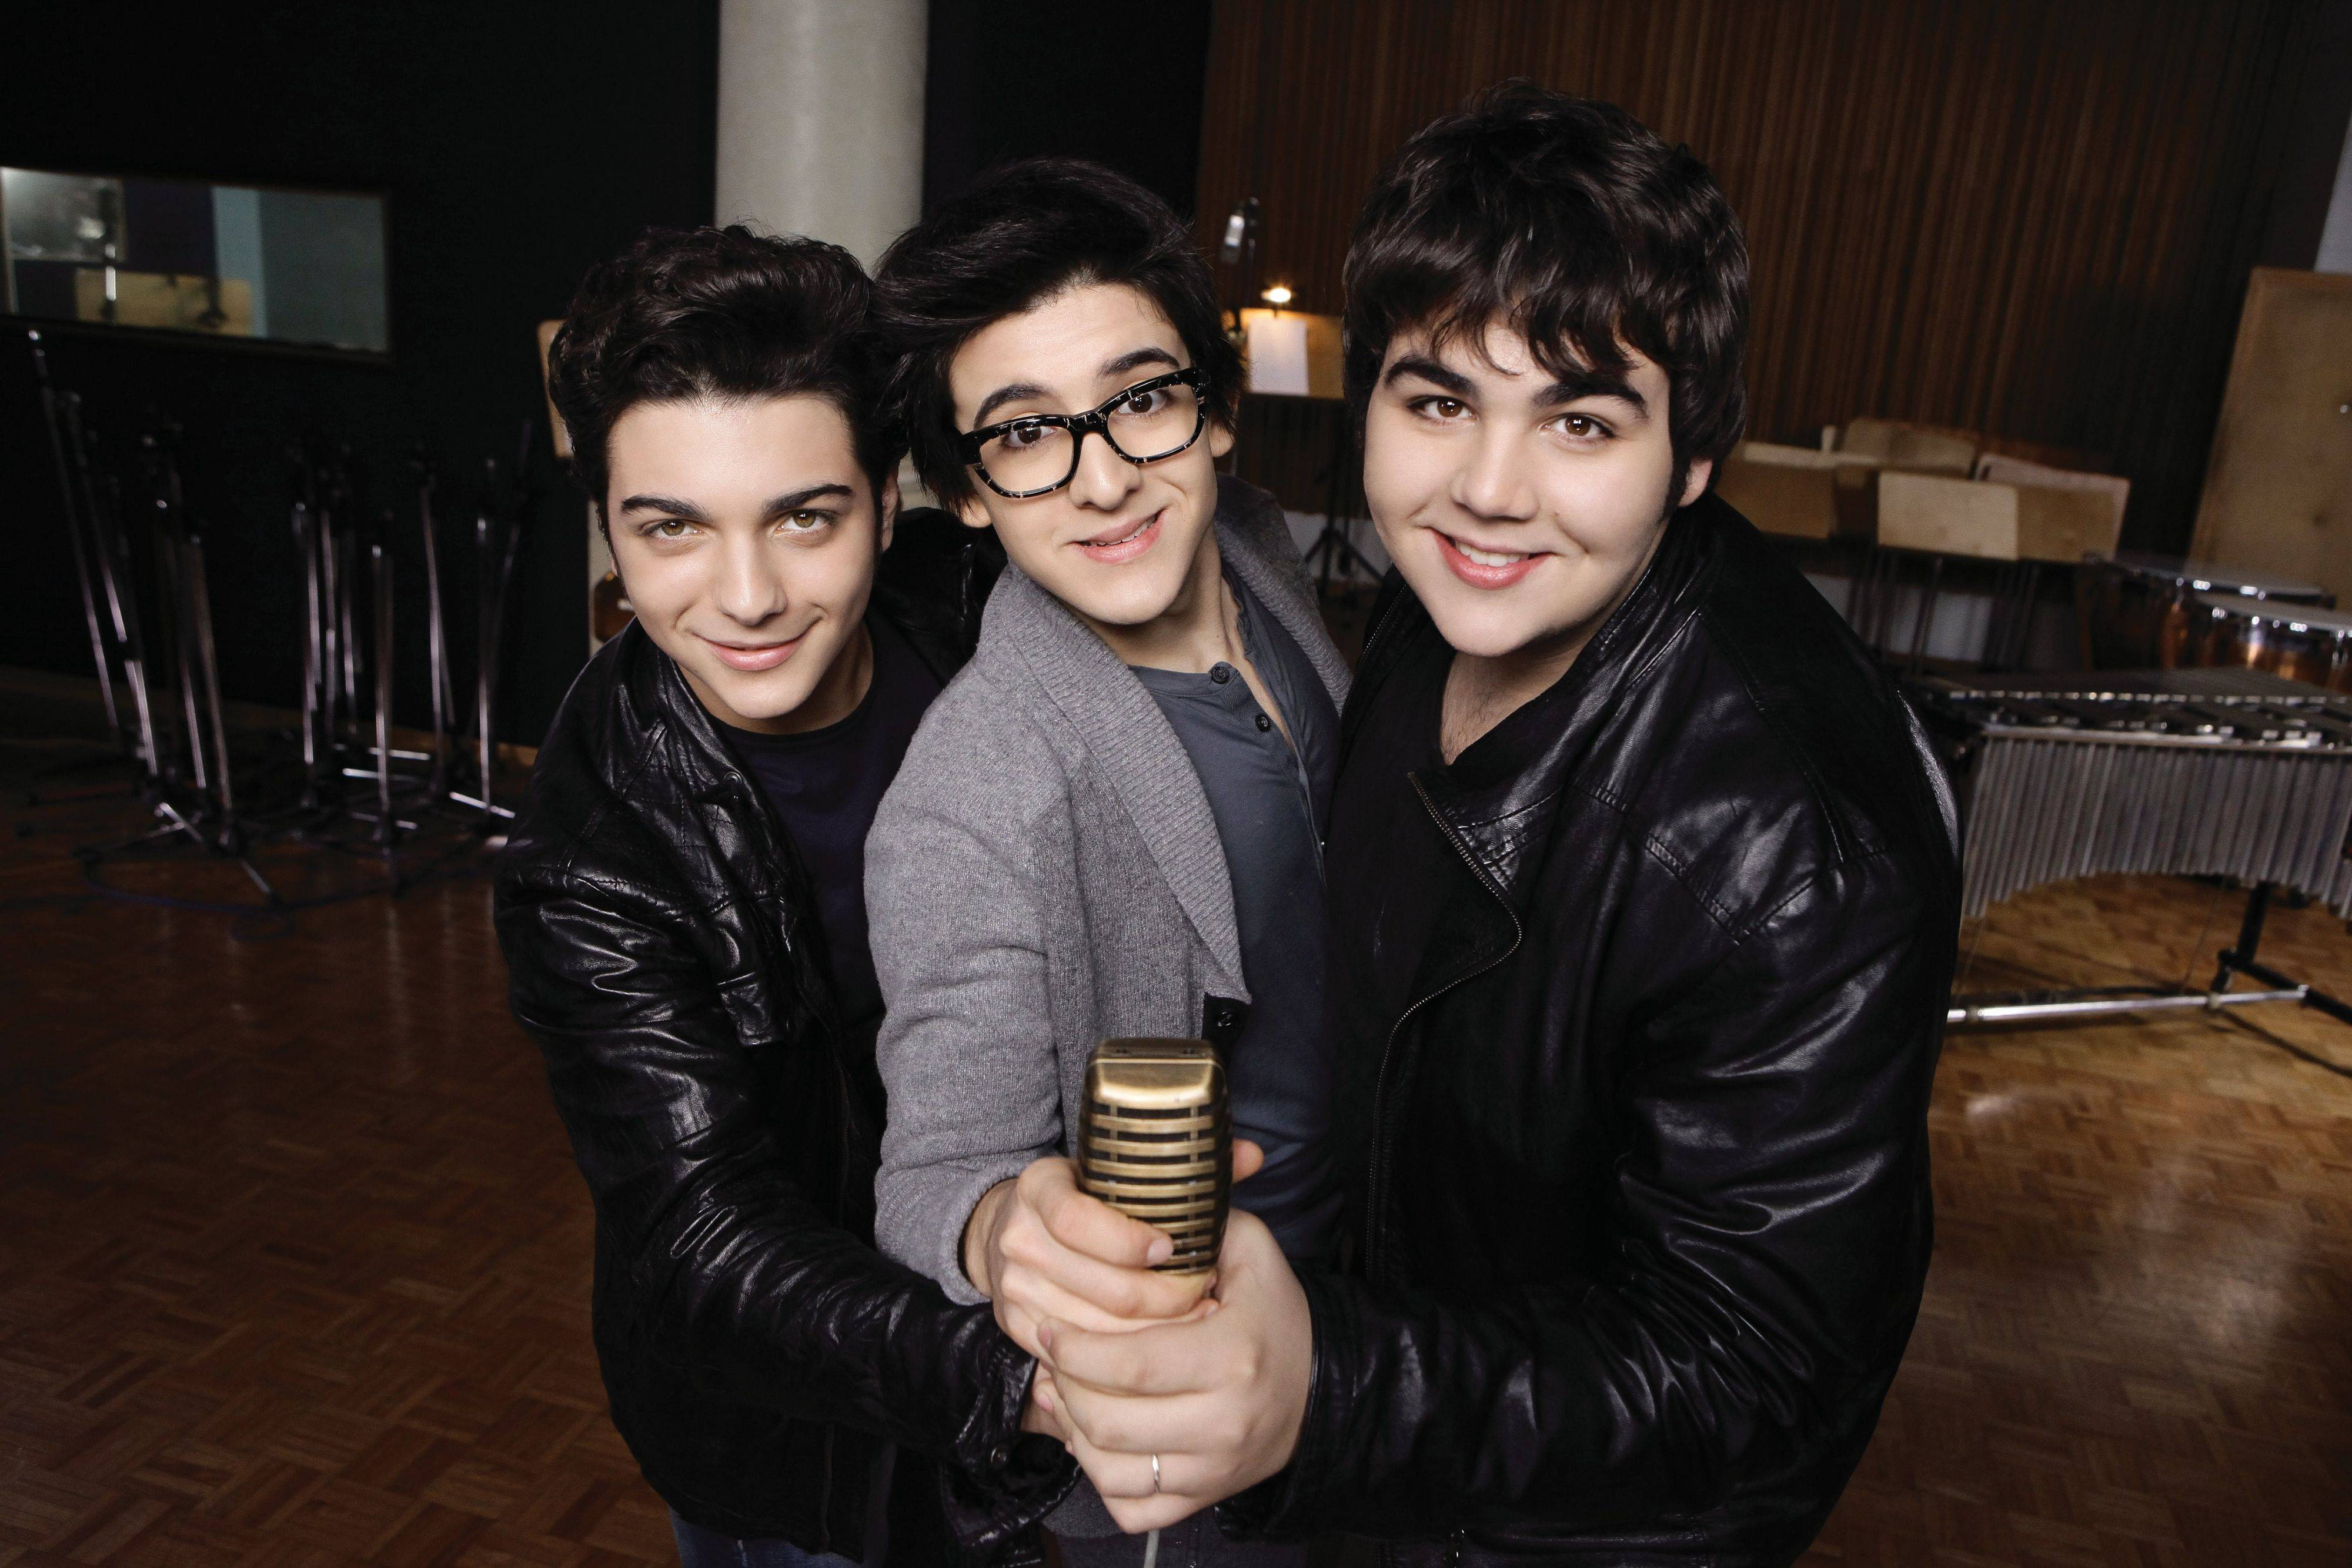 Italian pop-opera trio Il Volo is set to perform at the Chicago Theatre on Wednesday, Sept. 28.